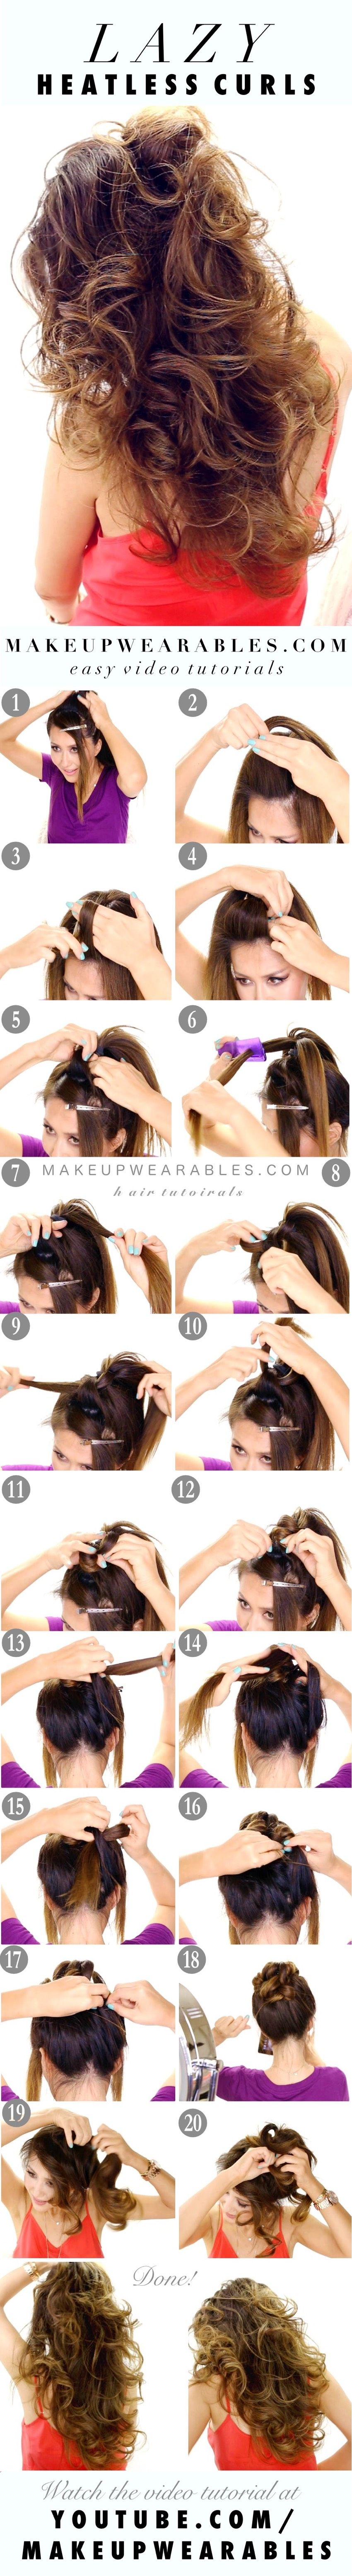 Easy Lazy Heatless Curls Overnight No Heat Waves Hairstyles